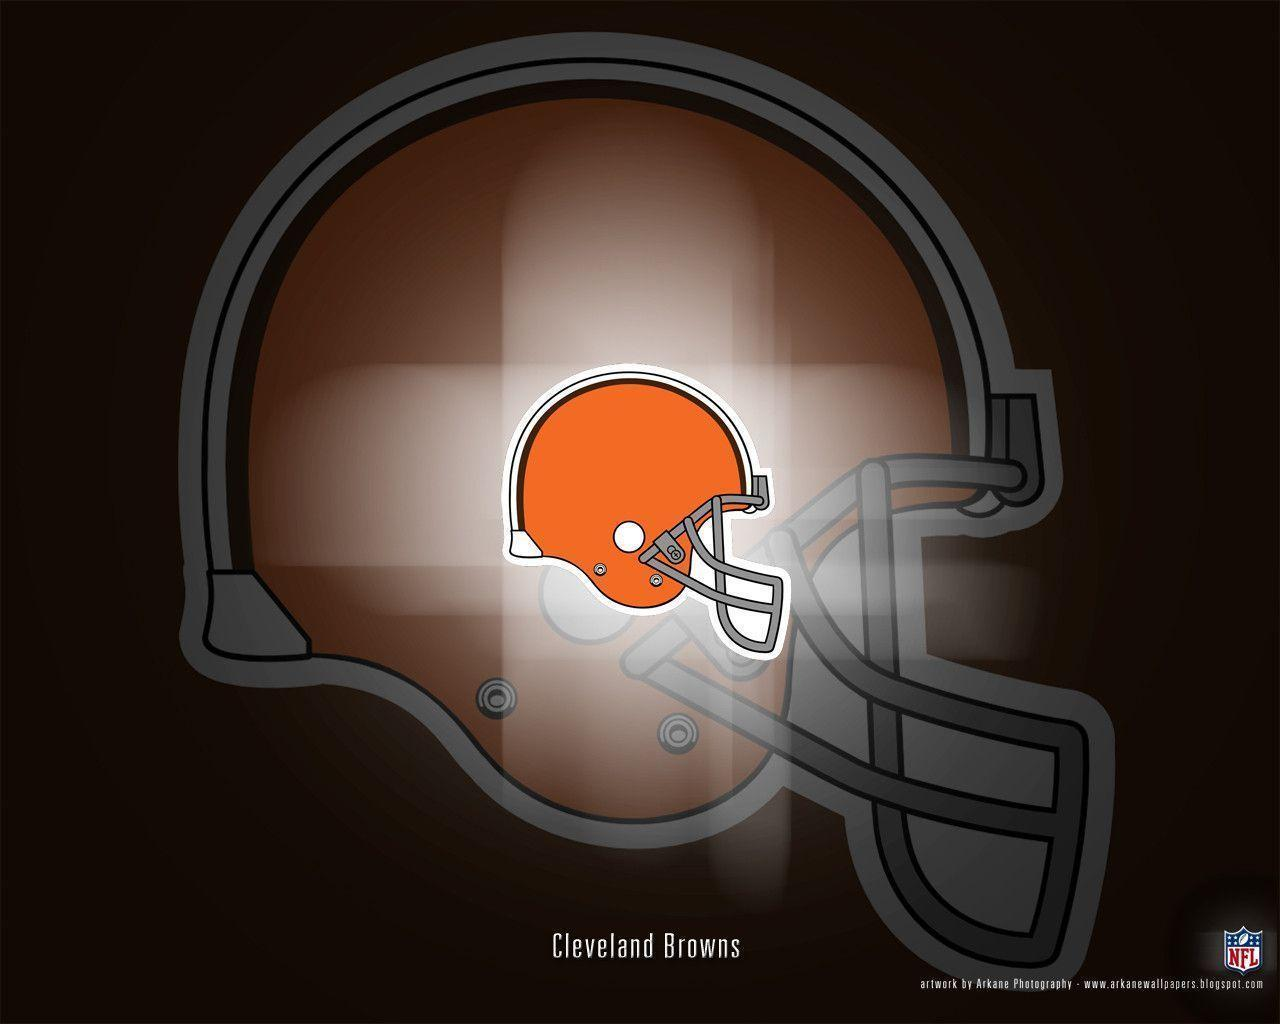 Cleveland Browns Backgrounds - Wallpaper Cave